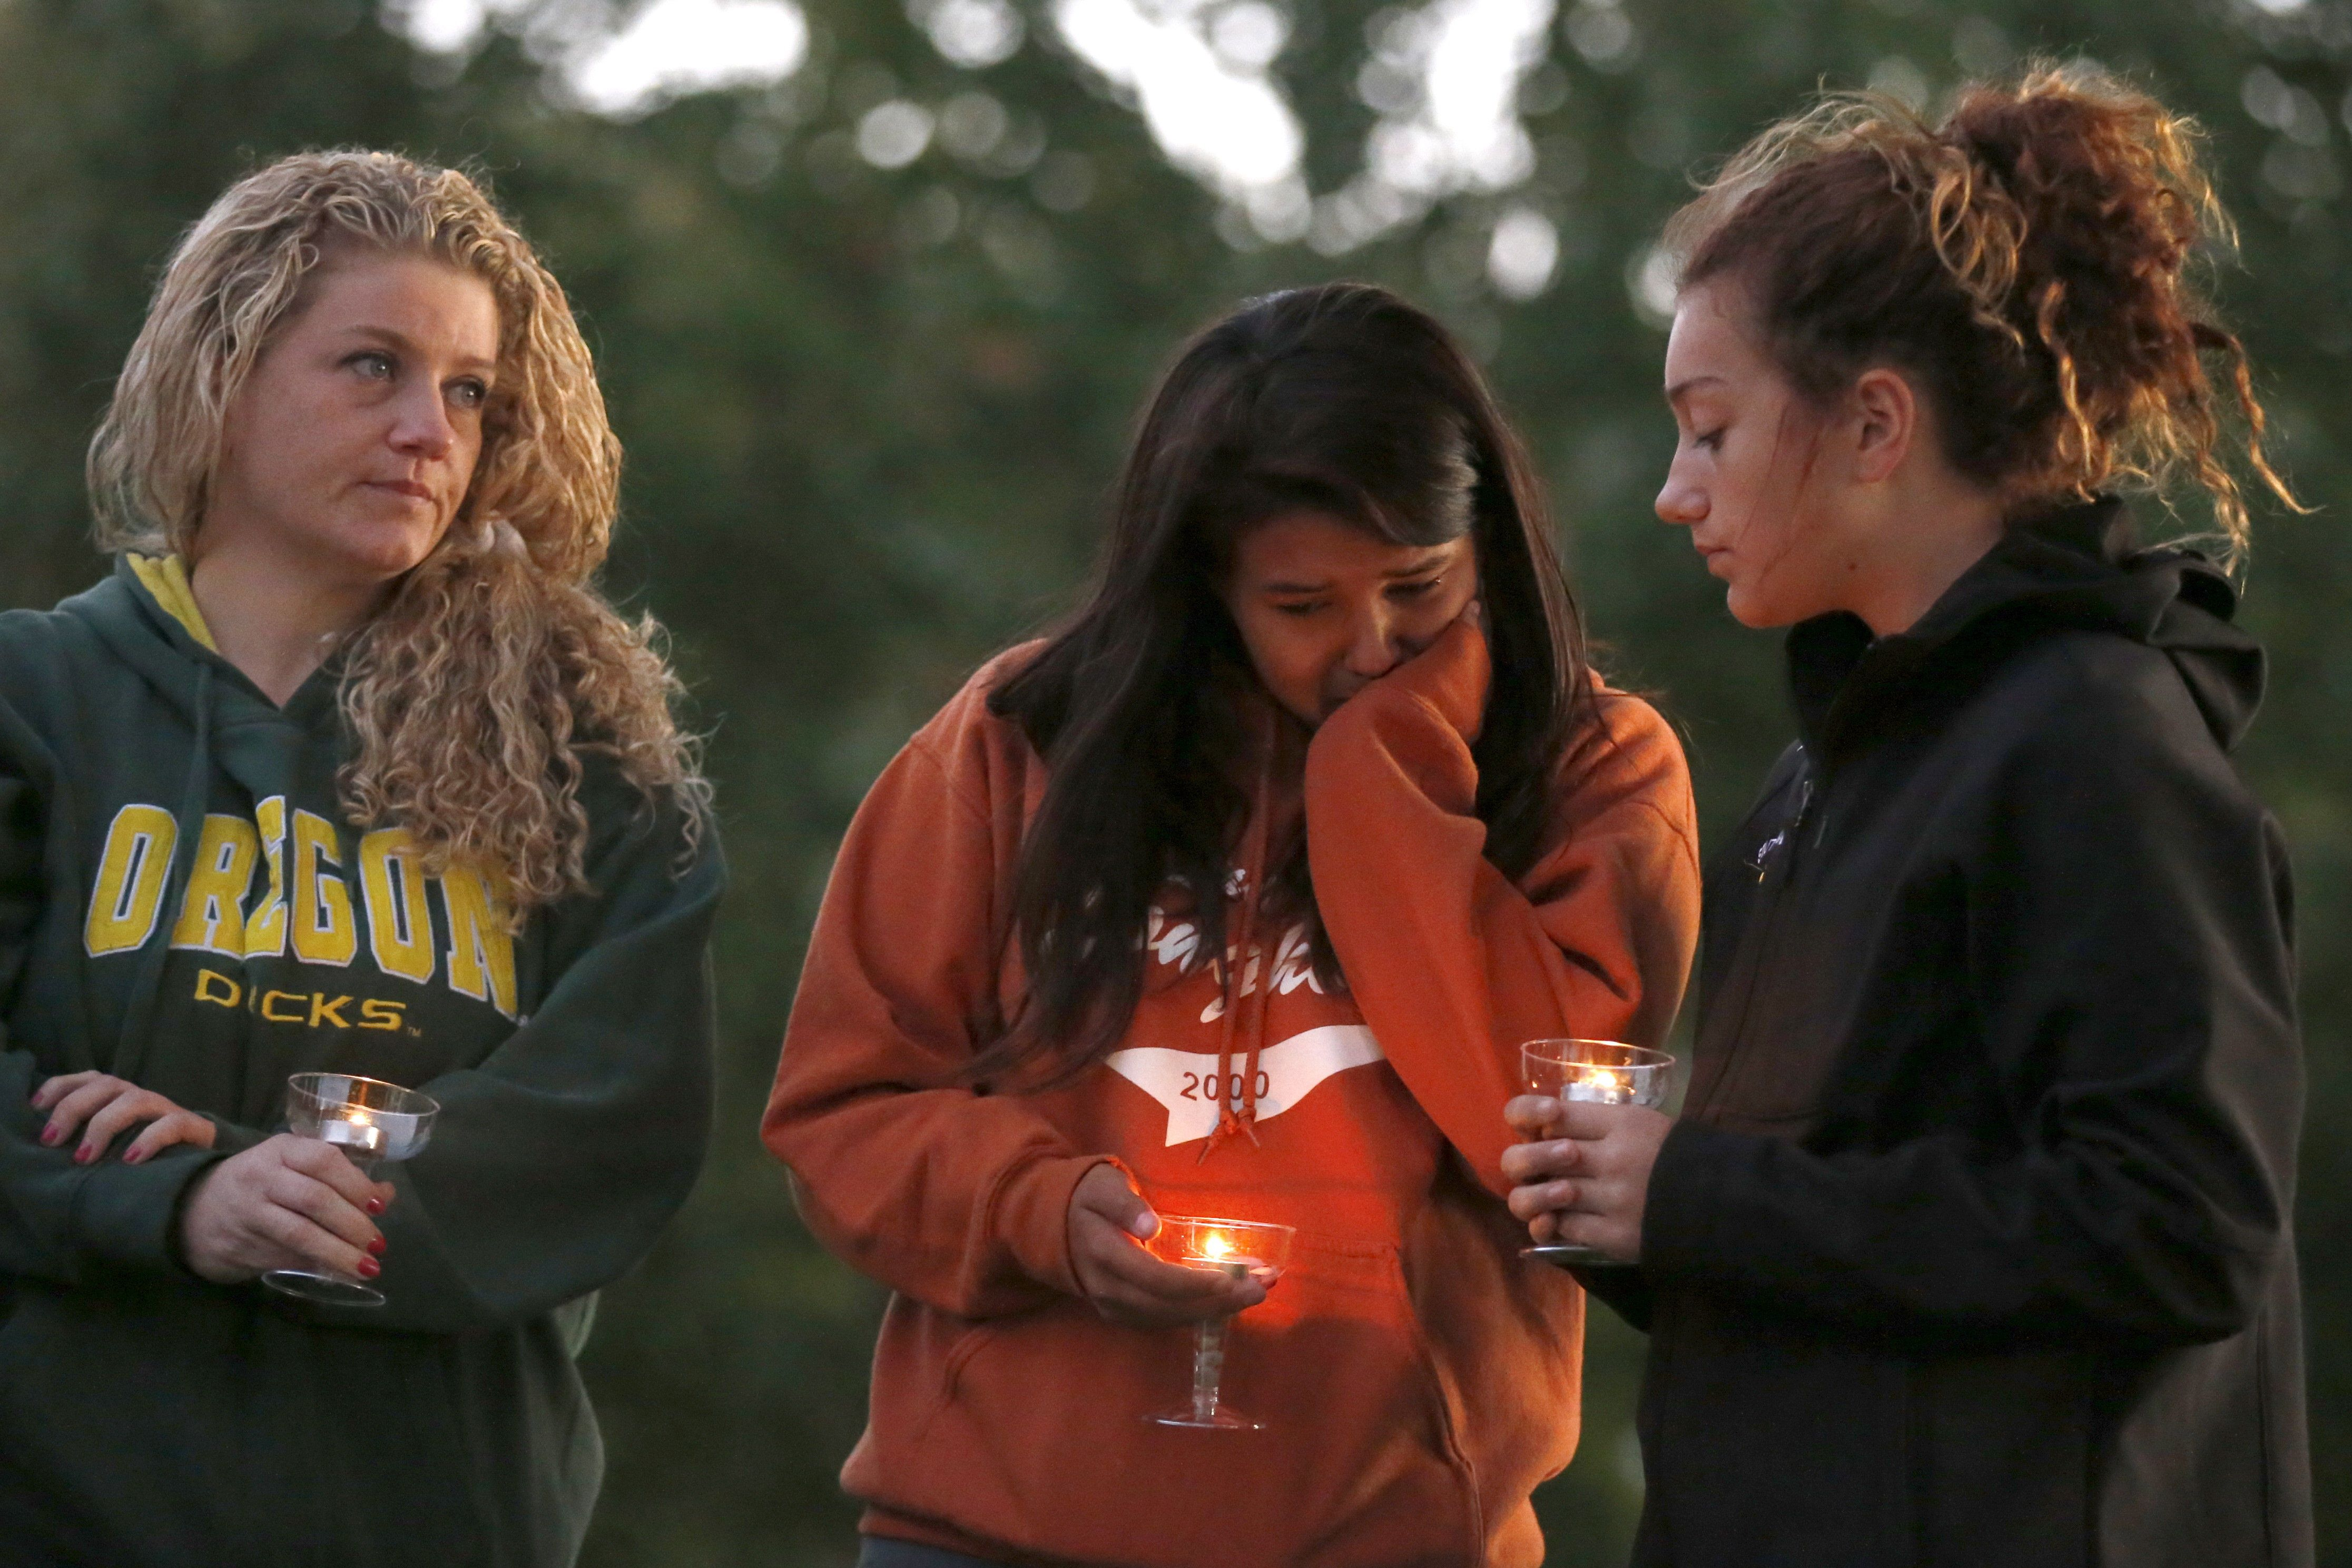 People take part in a candlelight vigil for victims of the Umpqua Community College shooting, in Winston, Oregon, United States, October 3, 2015. The gunman who killed his English professor and eight others at an Oregon community college committed suicide after a shootout with police who were on the scene within five minutes and exchanged fire with him almost immediately, authorities said. REUTERS/Lucy Nicholson